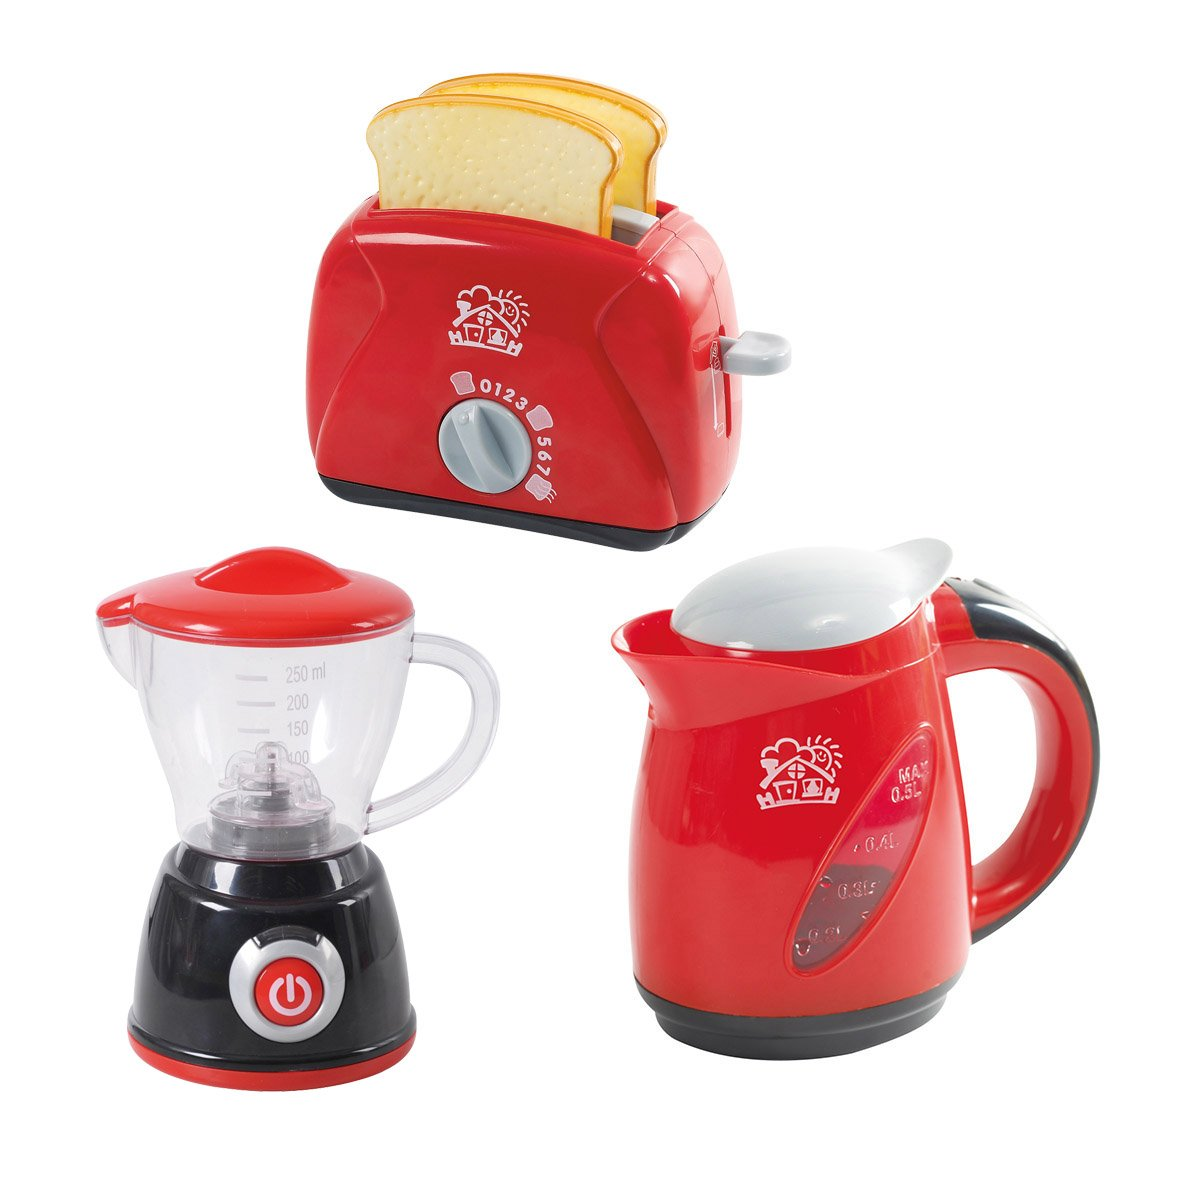 PlayGo Kitchen Chef Collection (My Toaster, My Blender, Deluxe Kettle) for Your Little Chef | Pretend Play Home Kitchen Appliances 3Piece Play Set for Kids Children Toddlers